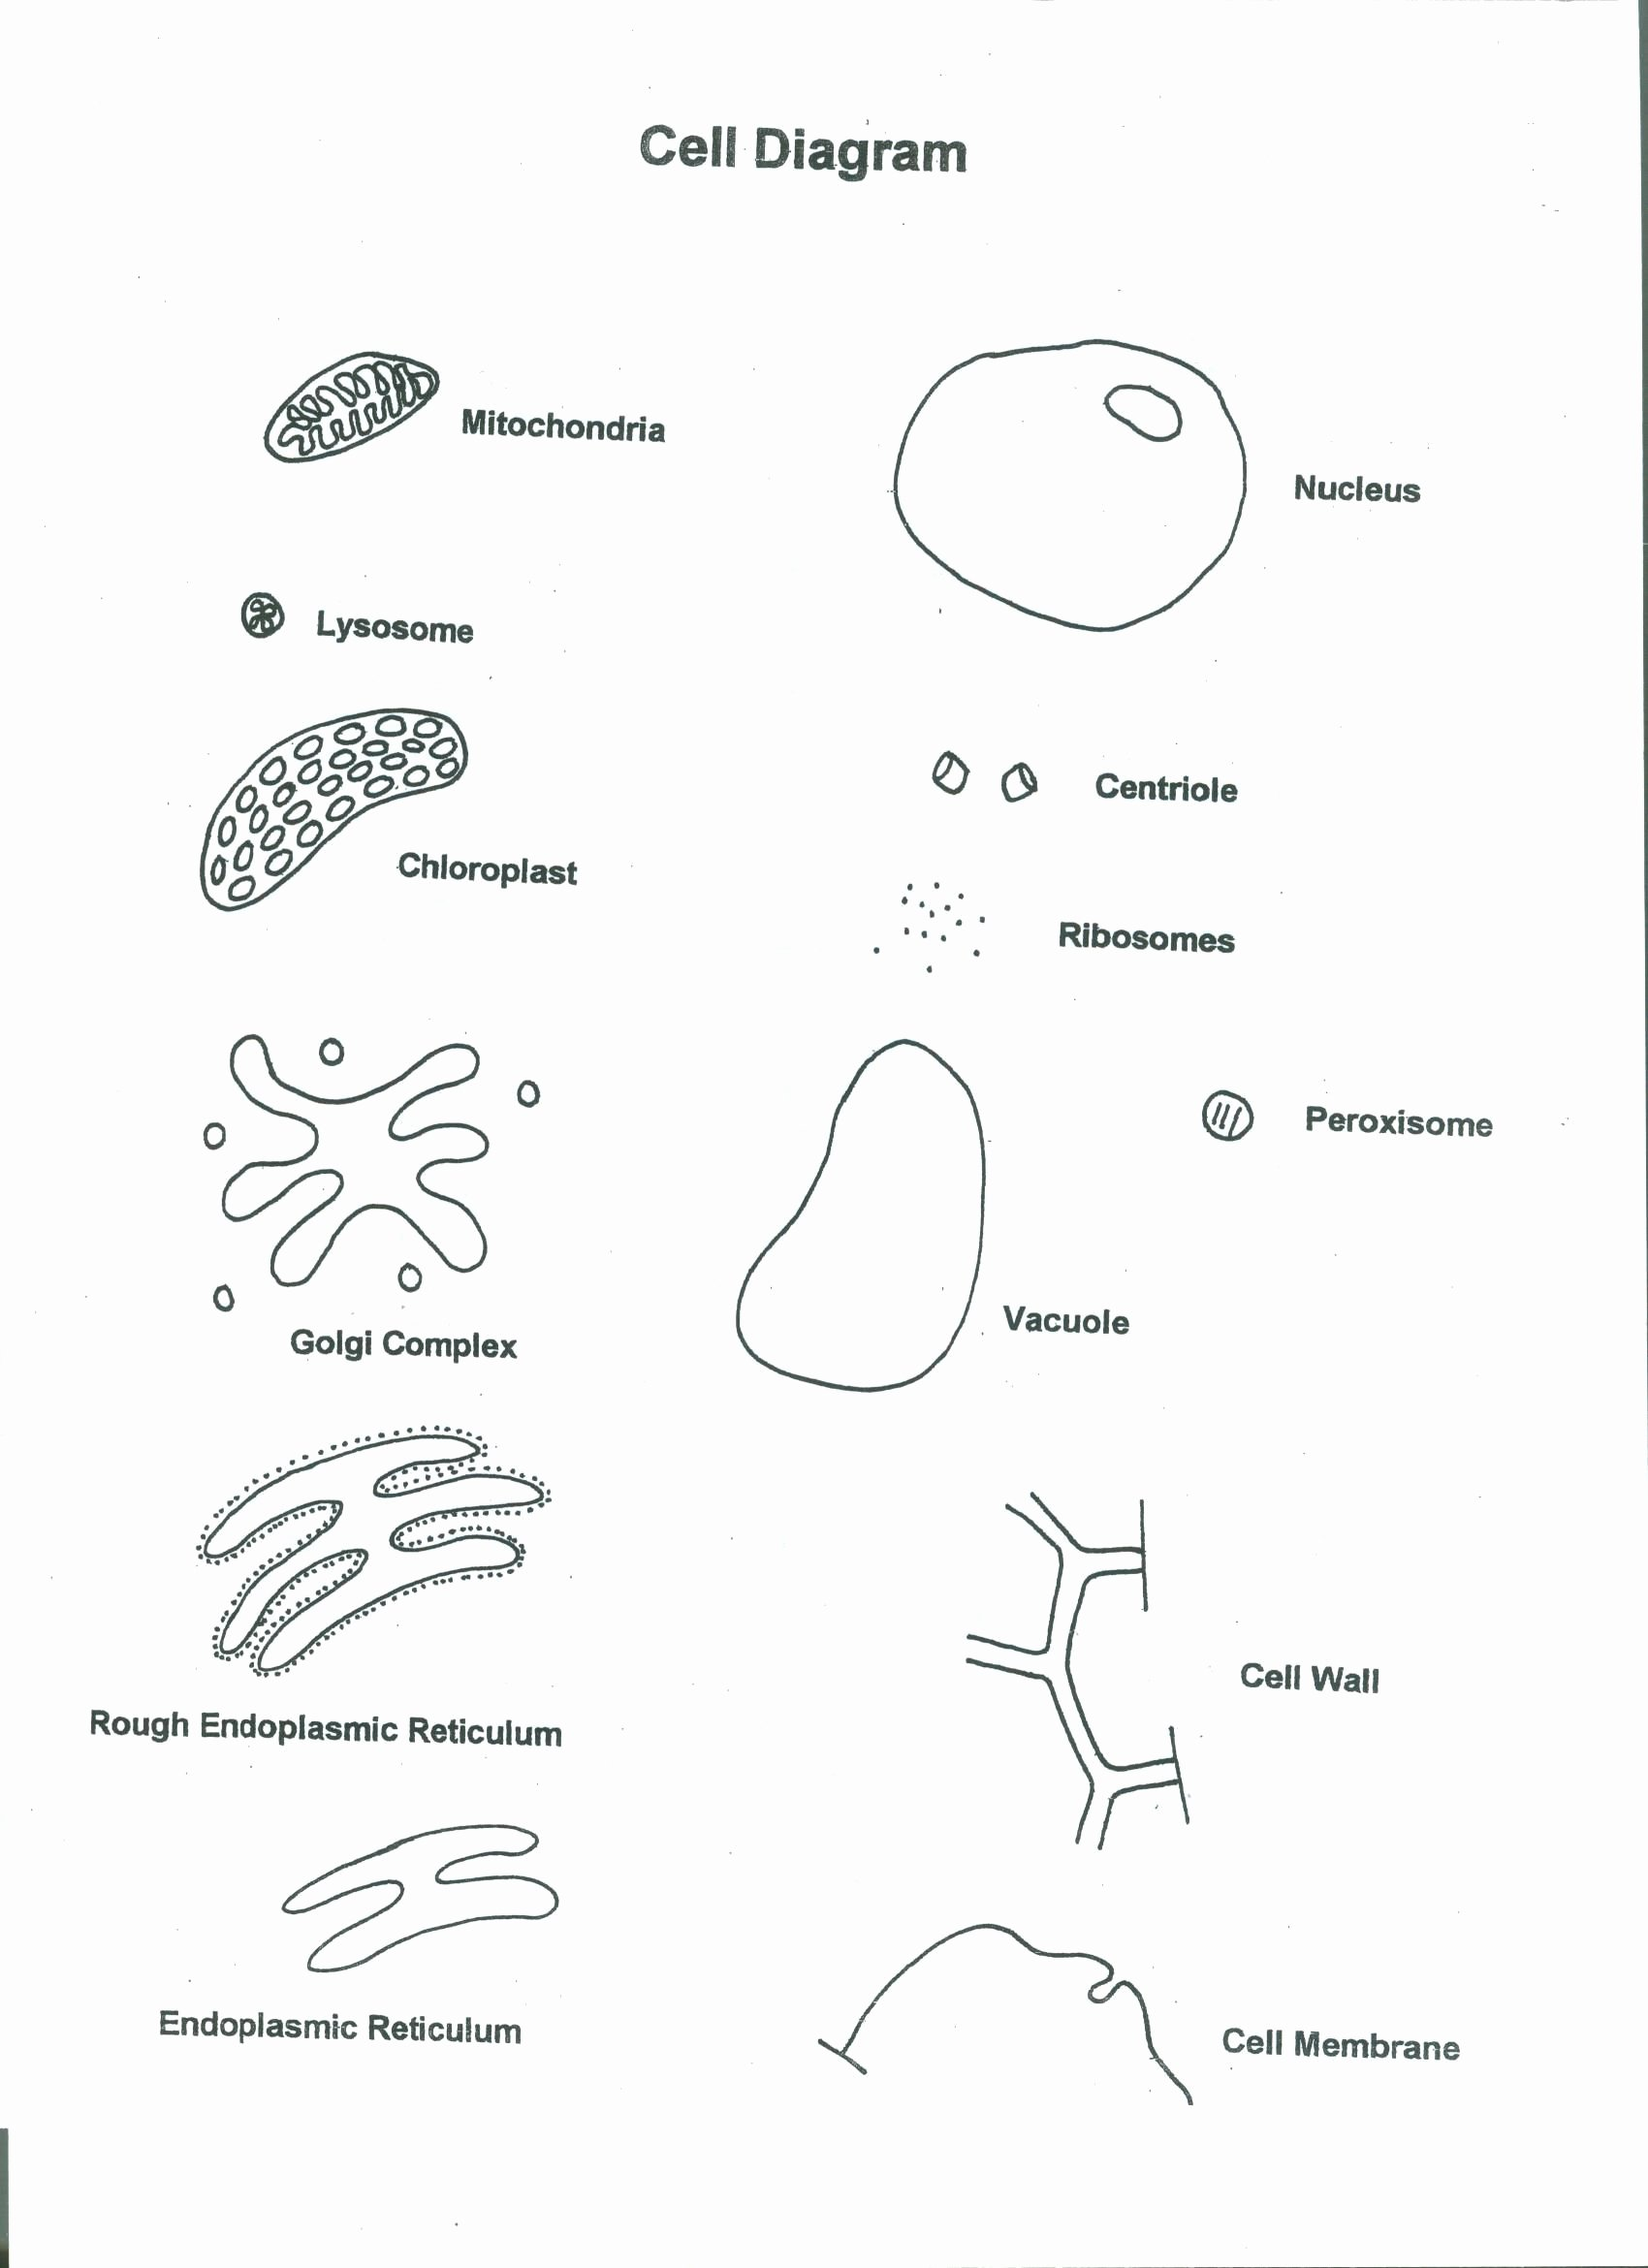 50 Cells Alive Cell Cycle Worksheet